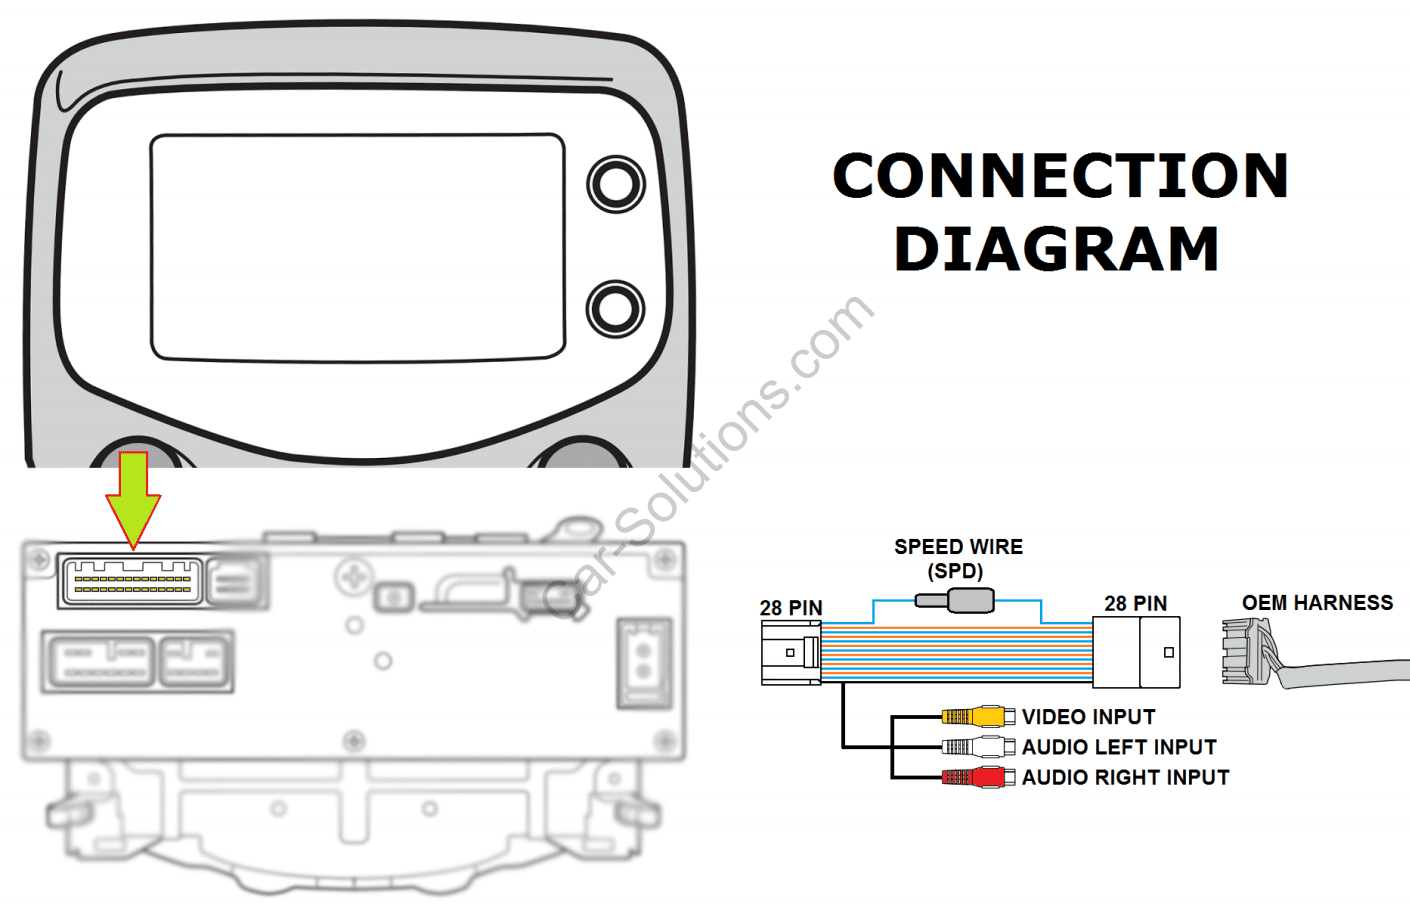 Cable connection diagram